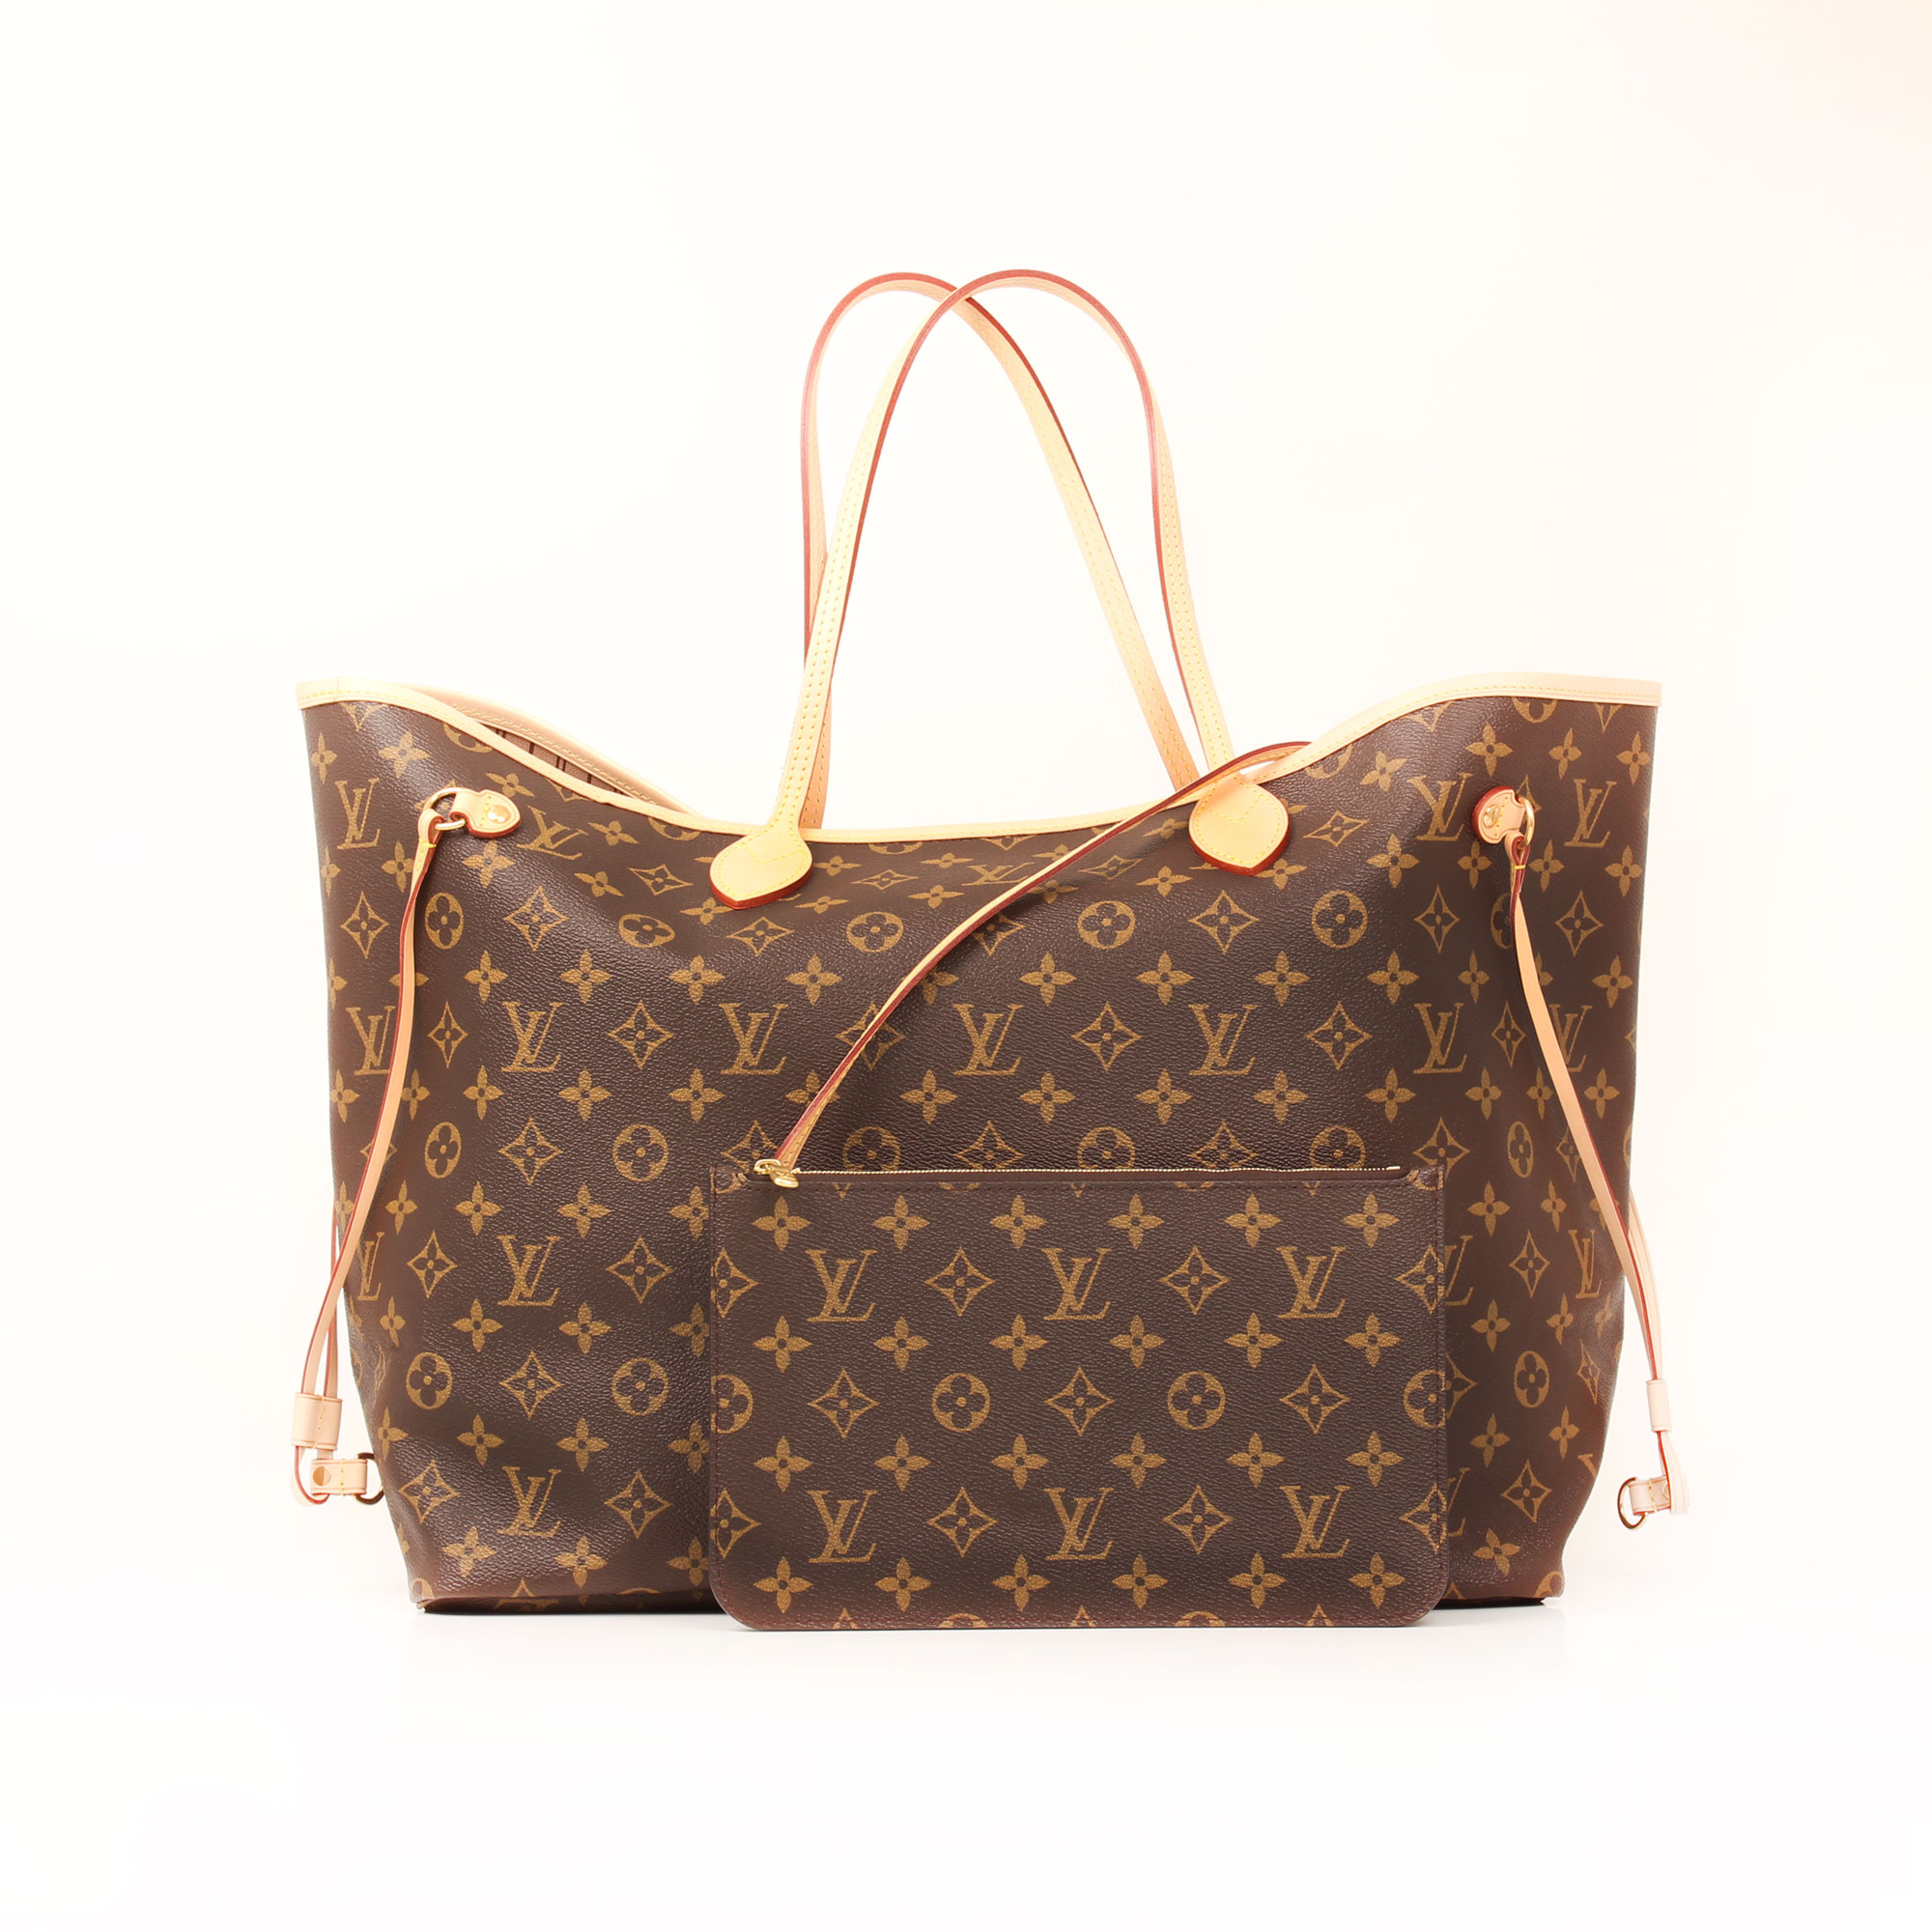 bag-louis-vuitton-neverfull-gm-monogram-new-front-pochette